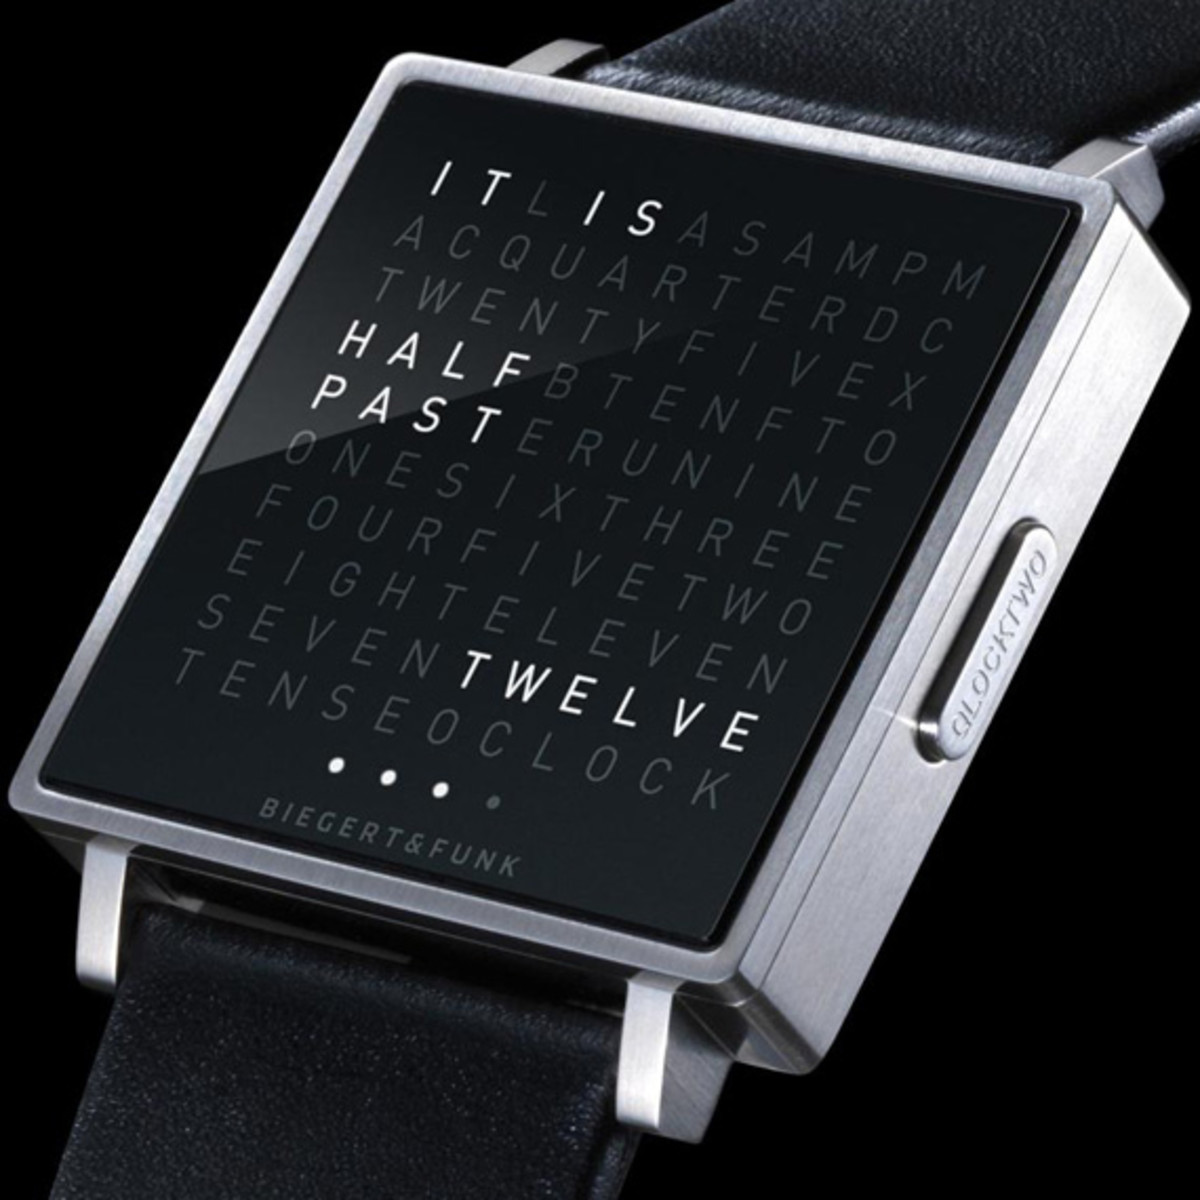 biegert funk qlocktwo w watch time telling in words. Black Bedroom Furniture Sets. Home Design Ideas